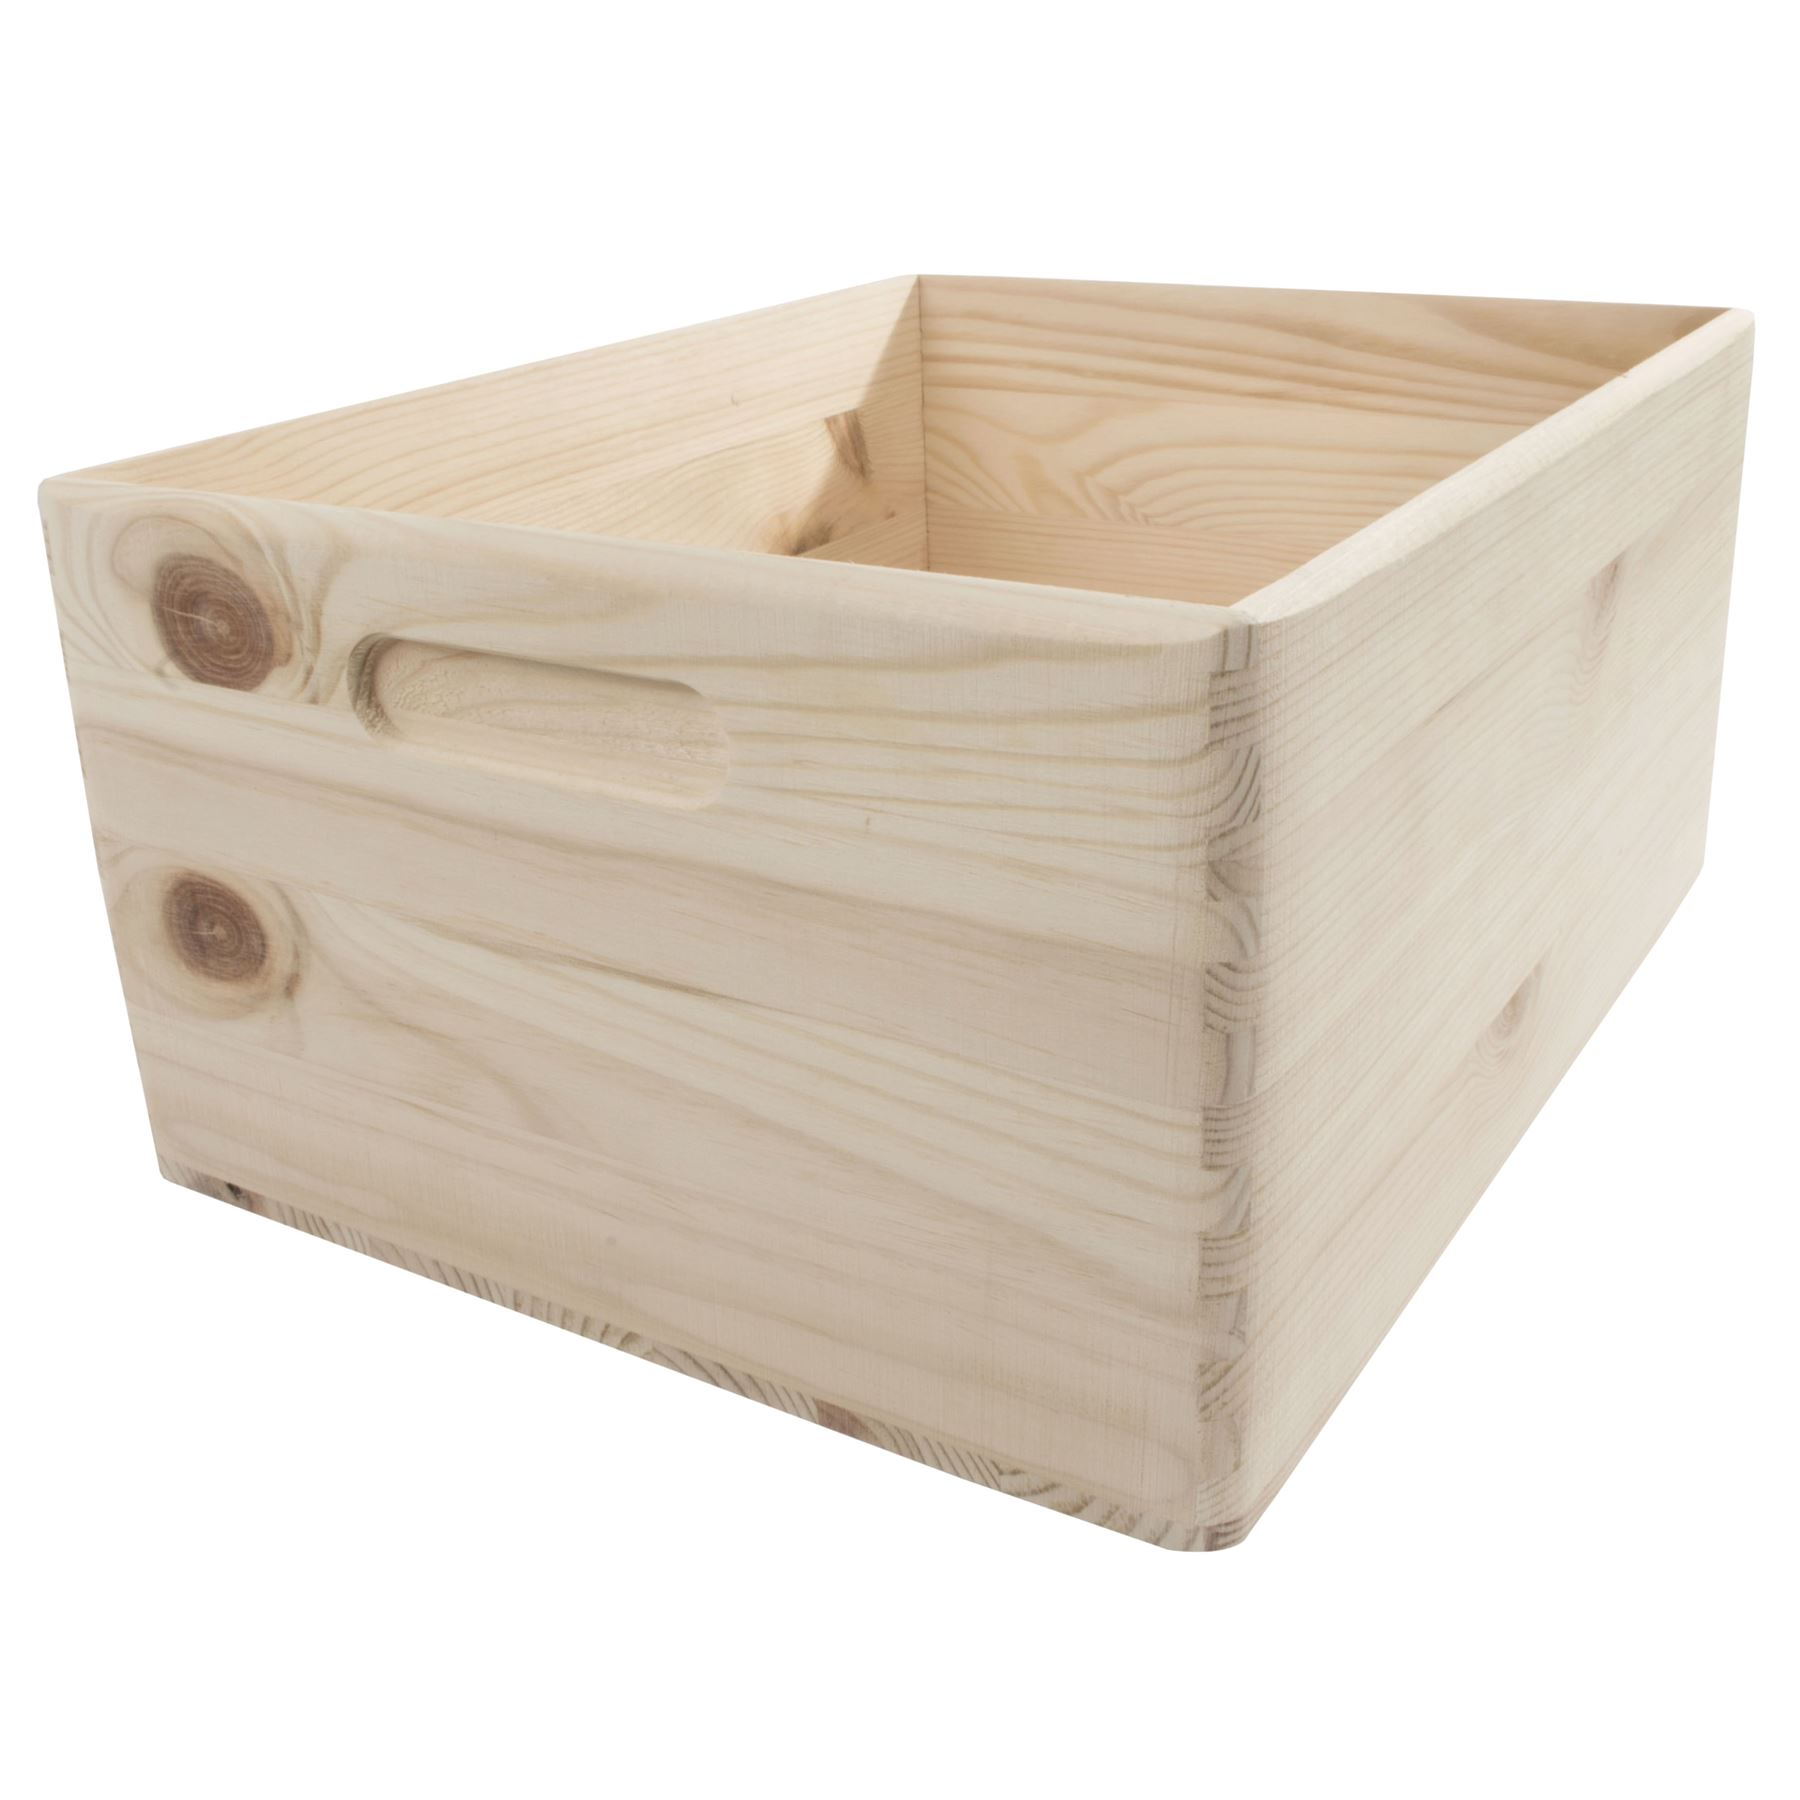 Household Essentials Whiskey Design Decorative Wood Crate ...